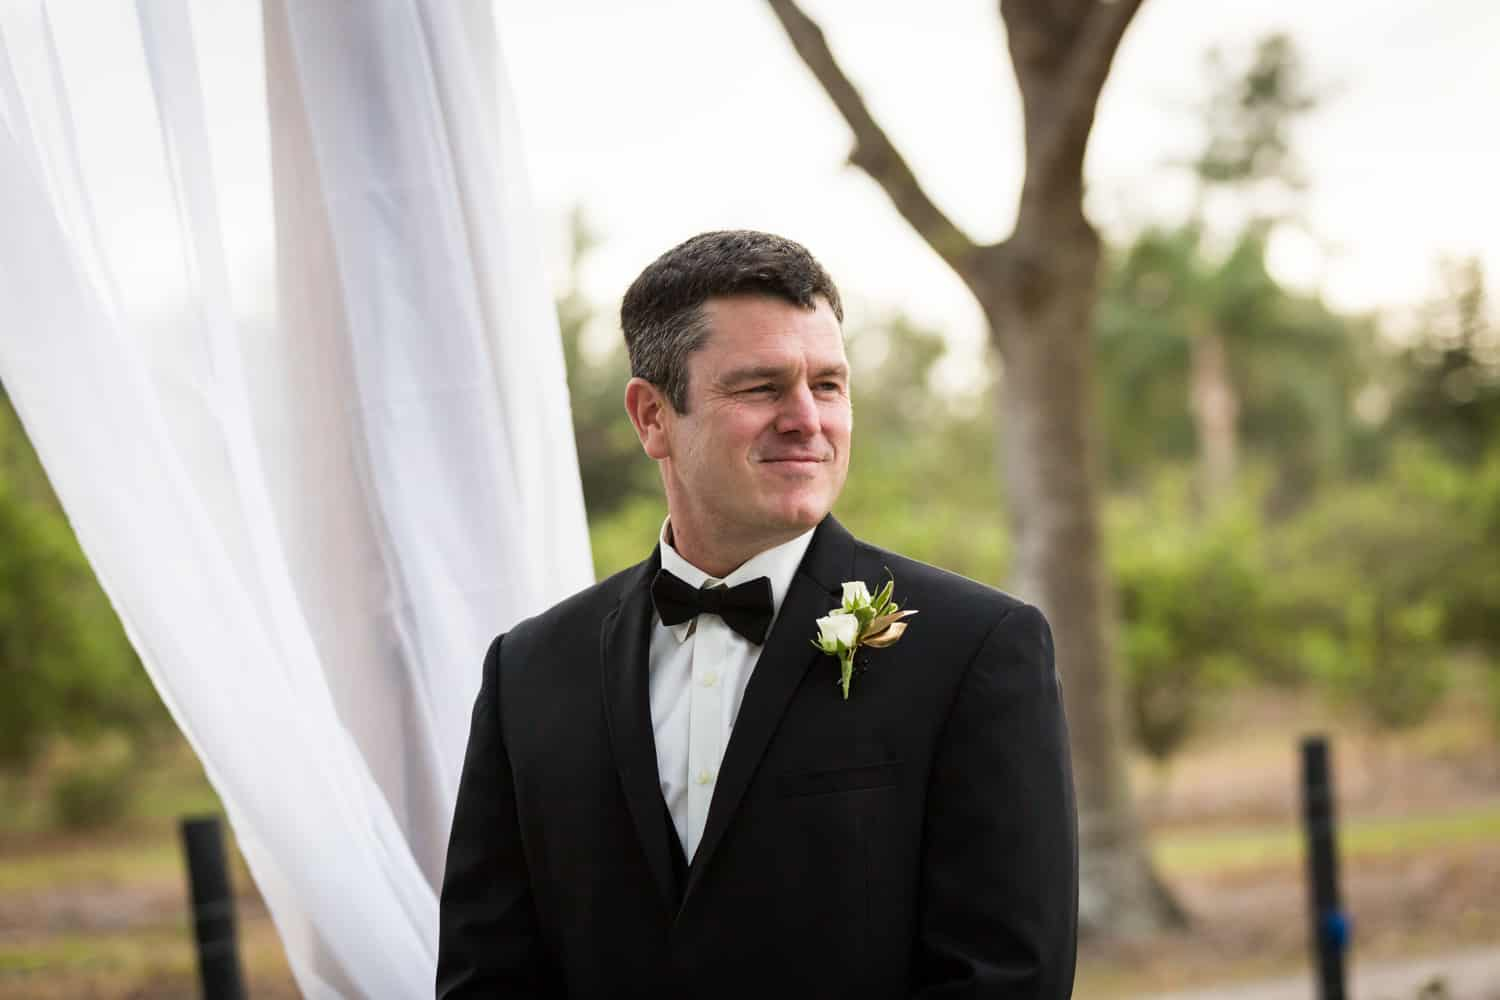 Groom waiting for bride during ceremony for an article on wedding cost cutting tips